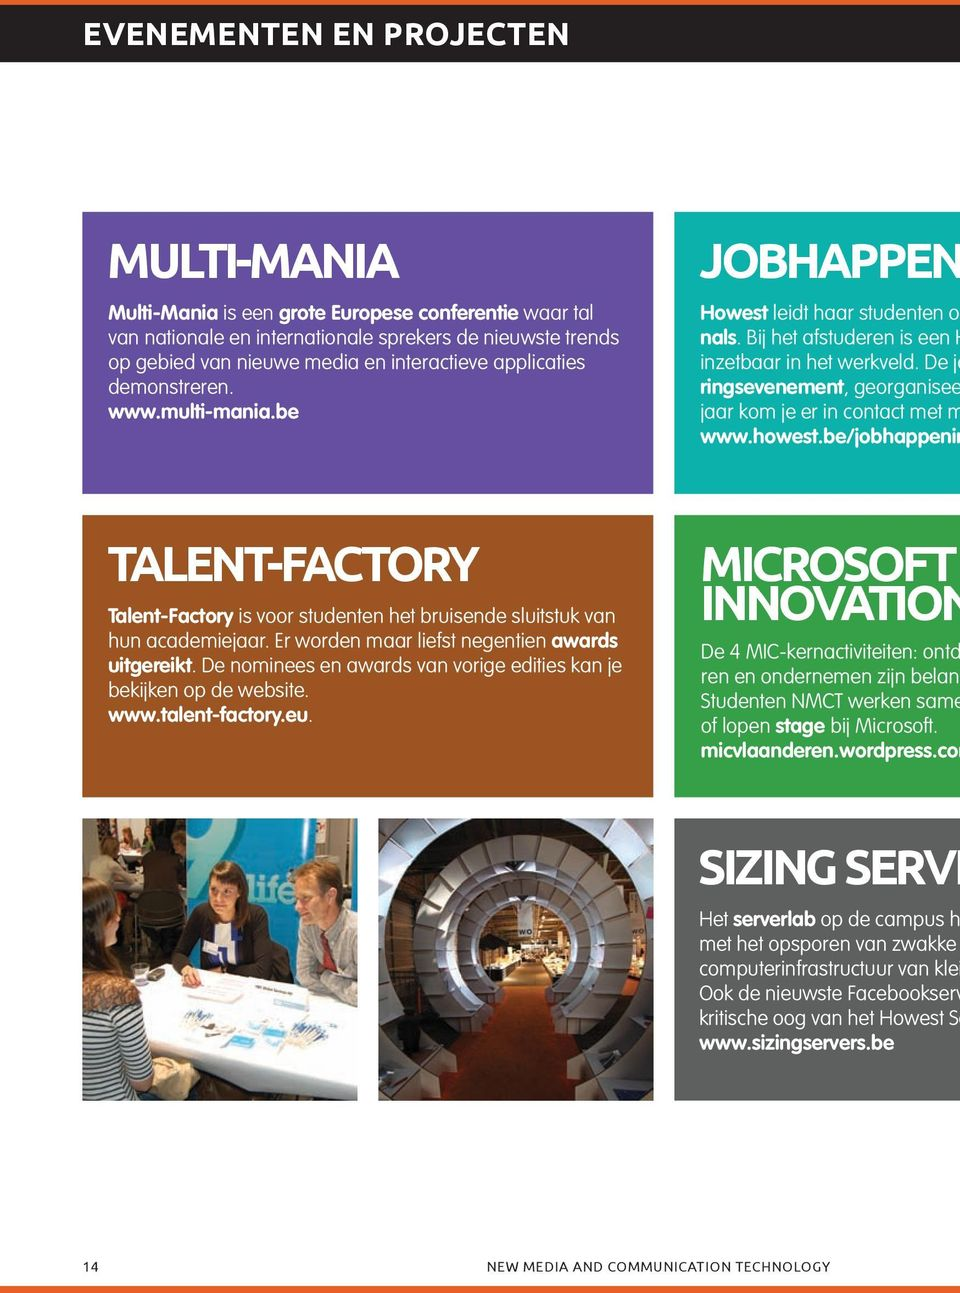 De jo ringsevenement, georganisee jaar kom je er in contact met m www.howest.be/jobhappenin TALENT-FACTORY Talent-Factory is voor studenten het bruisende sluitstuk van hun academiejaar.